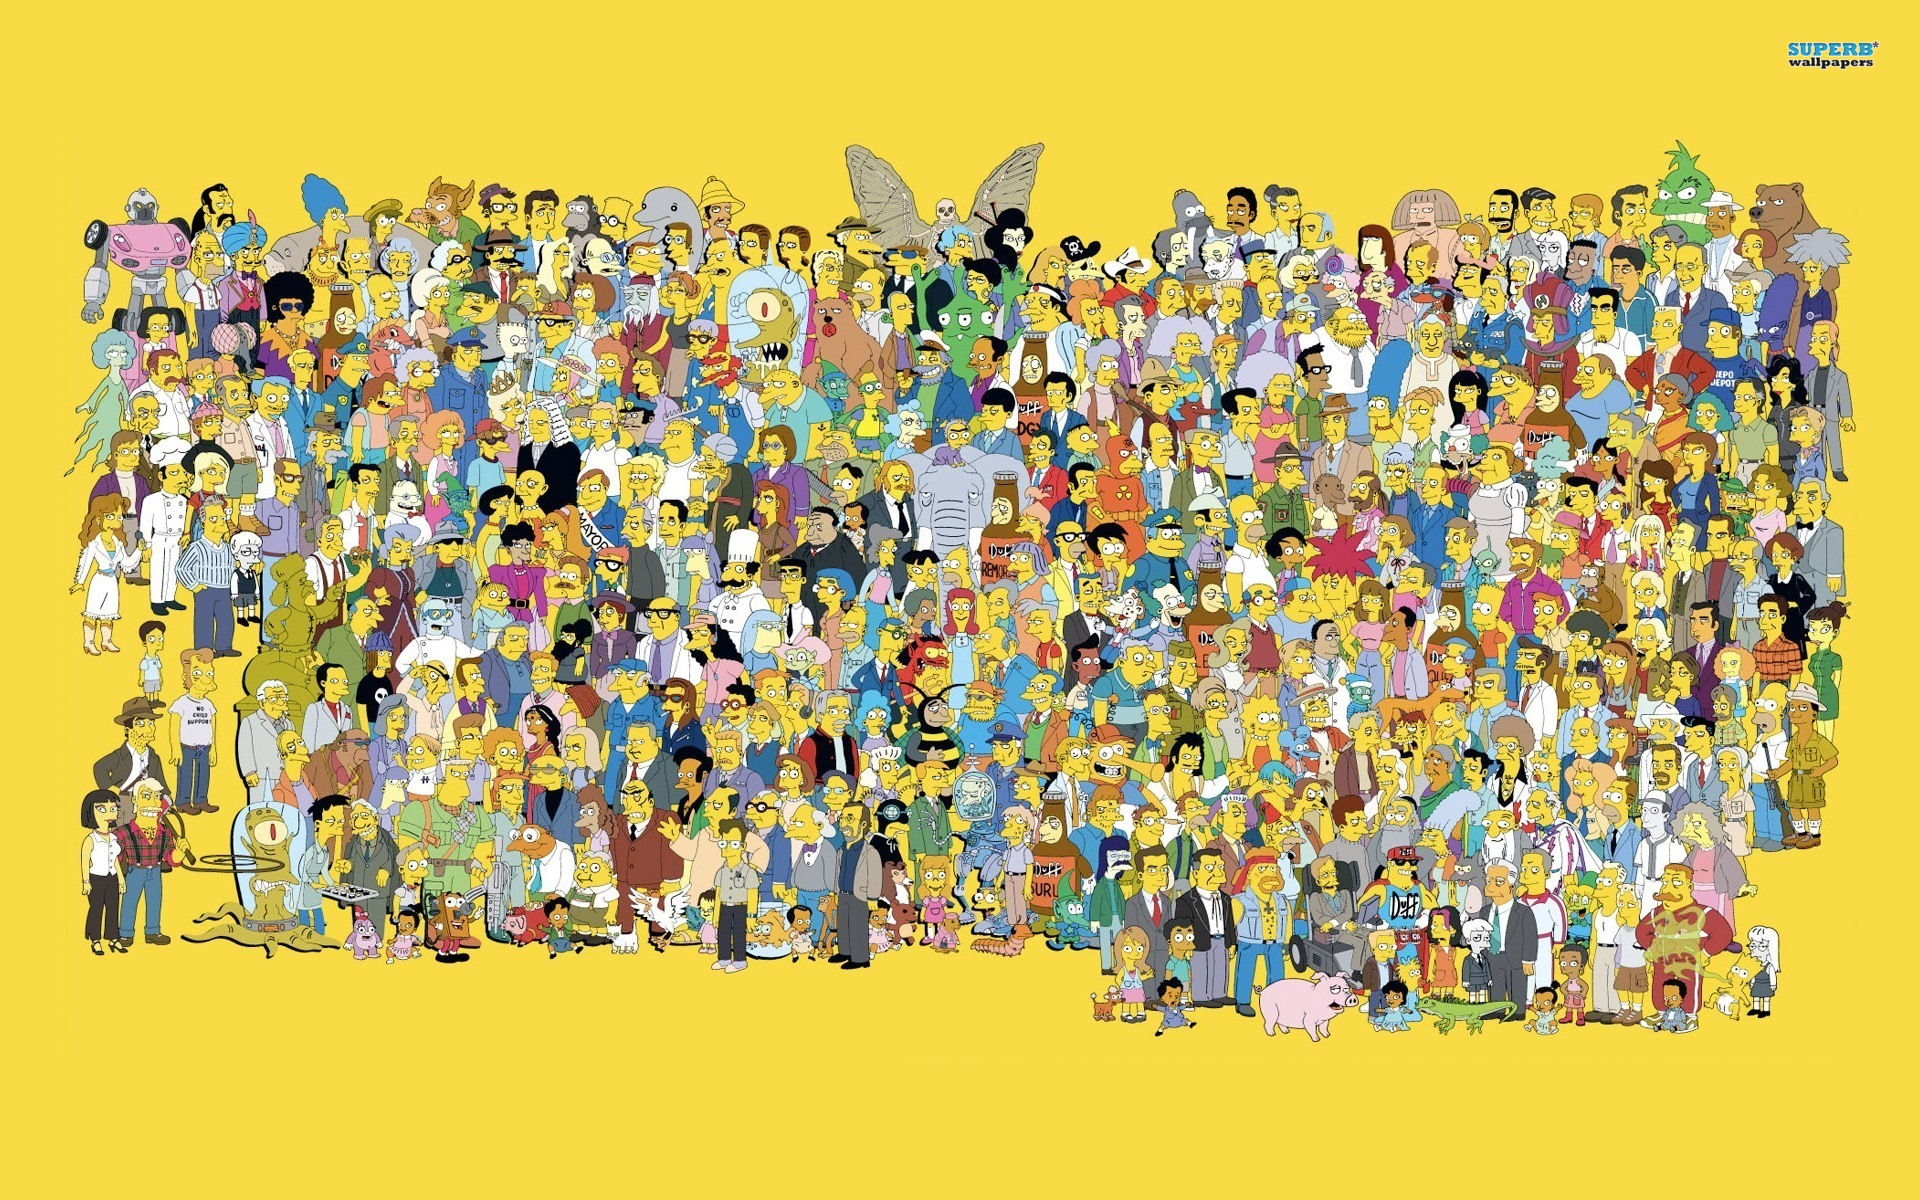 The Simpsons wallpaper 1920x1200 jpg